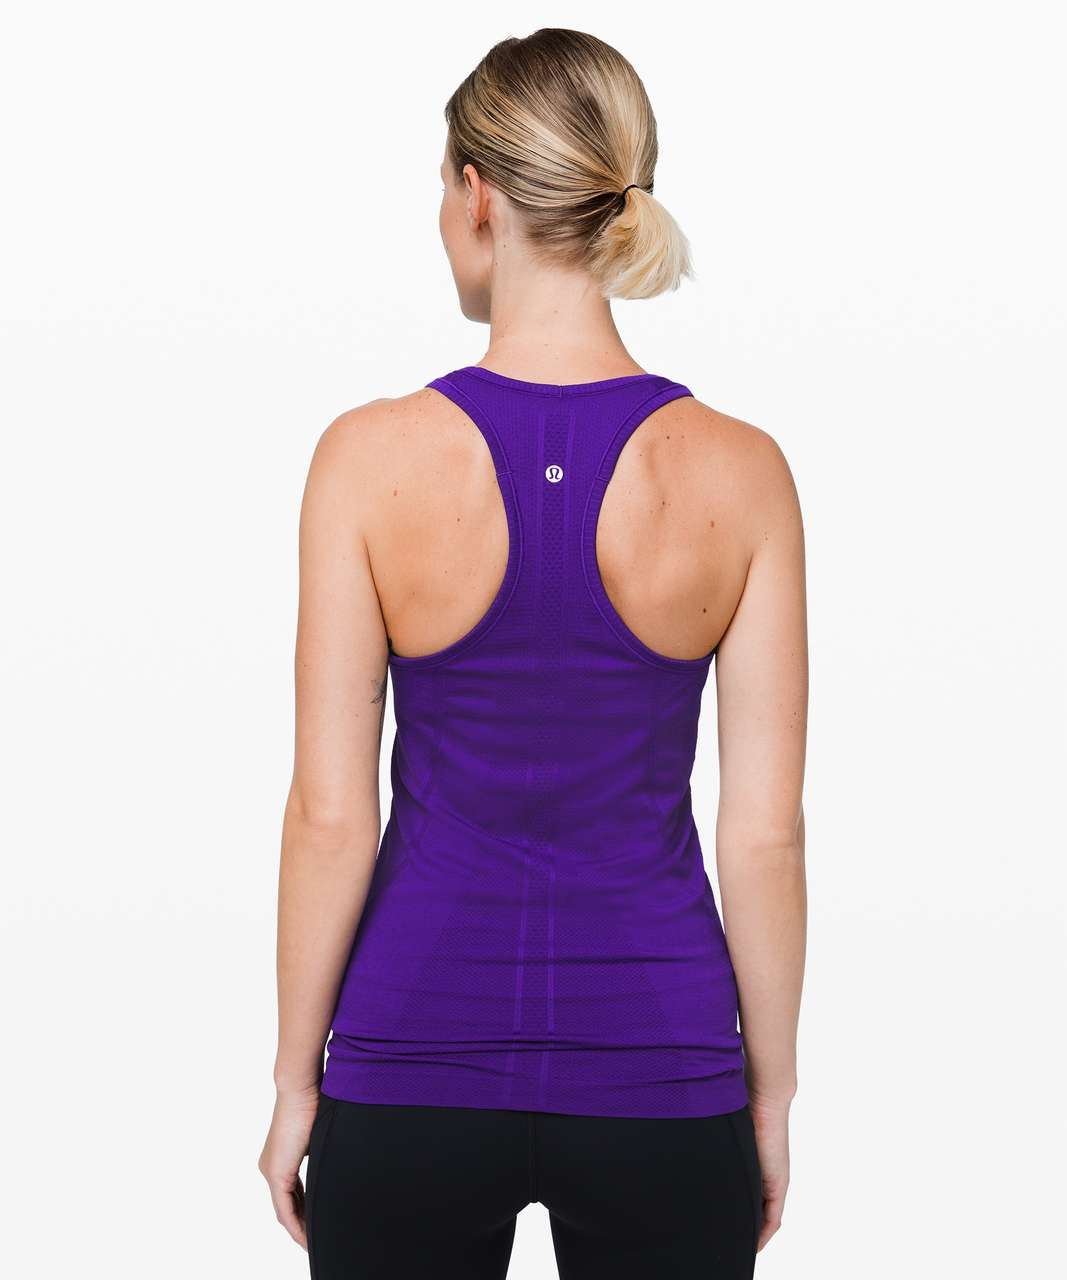 Lululemon Swiftly Tech Racerback - Court Purple / Court Purple